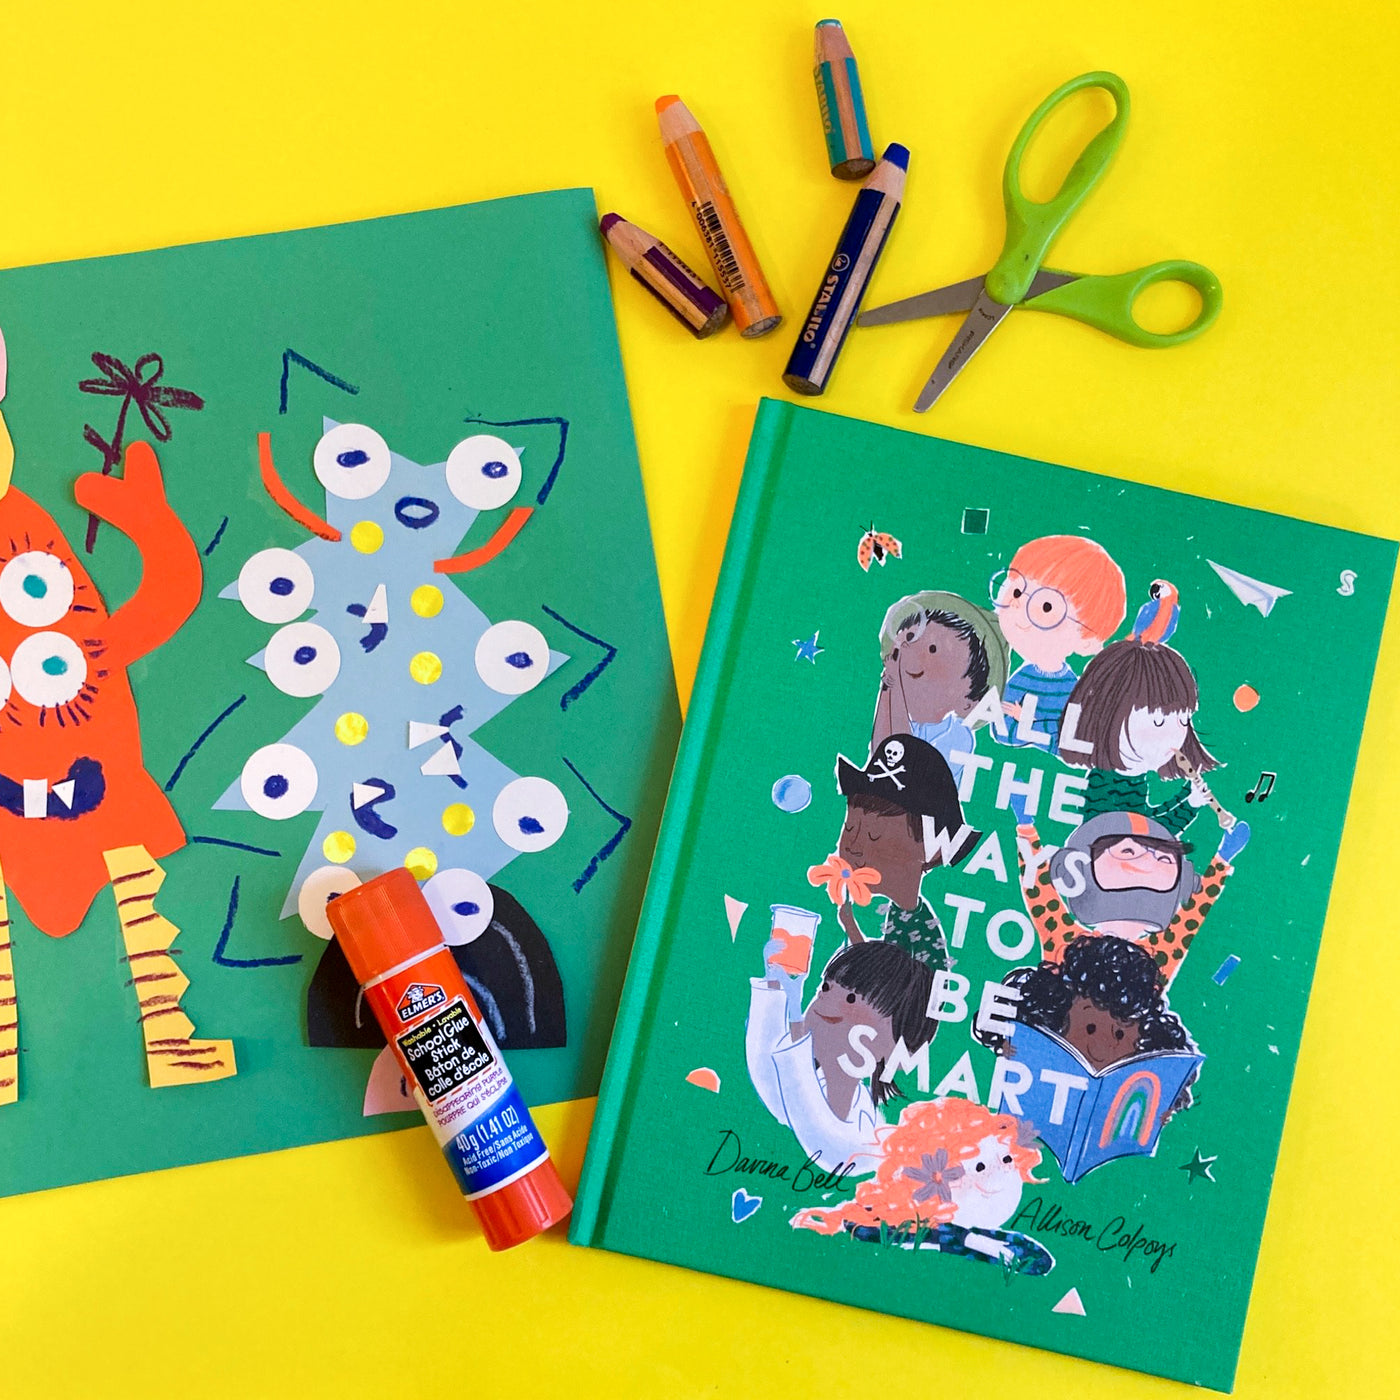 Online Mixed Media Art Class for Kids aged 3 to 8 years inspired by the book All the Ways to be Smart